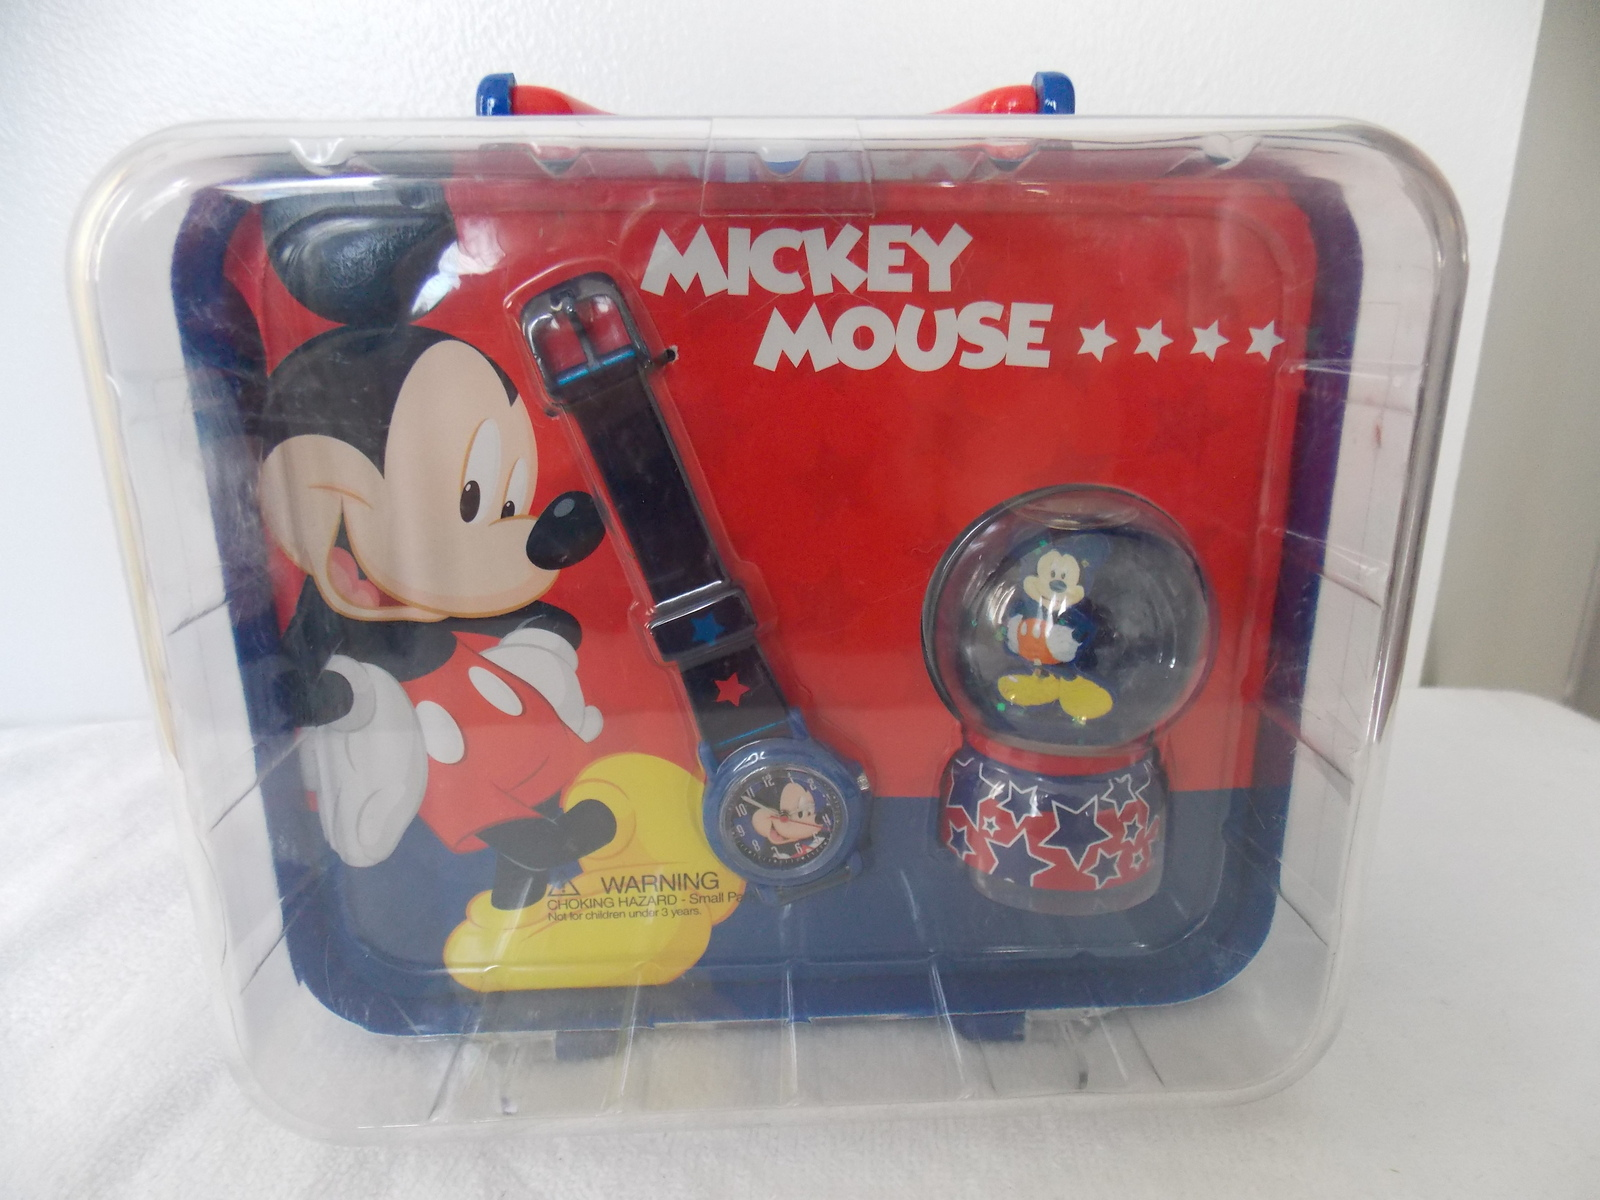 Disney Mickey Mouse Watch and Mini Snowglobe Lunchbox  - $35.00